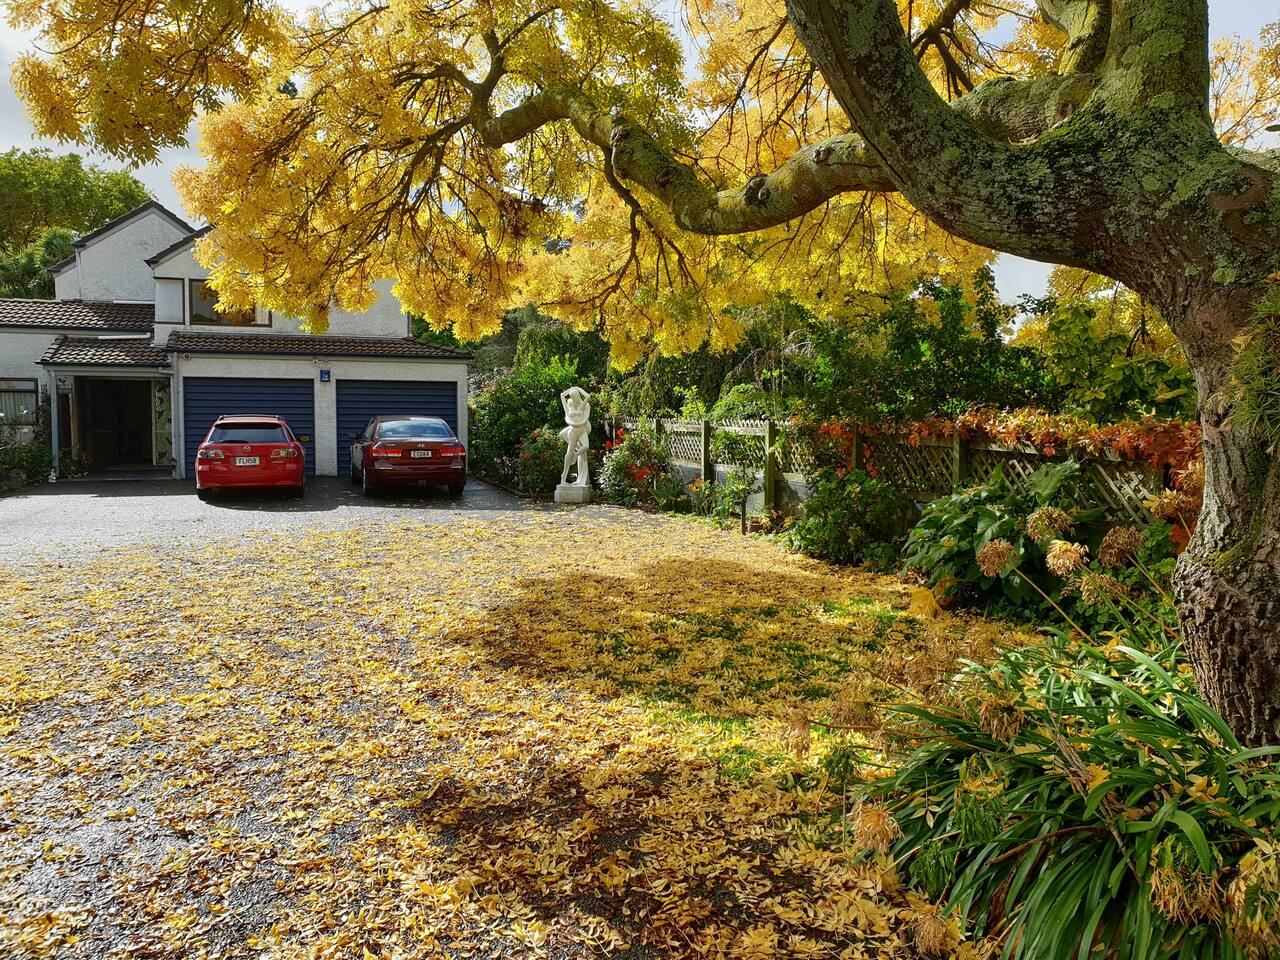 Entrance to our house as seen in Autumn. Your car park by the front porch!